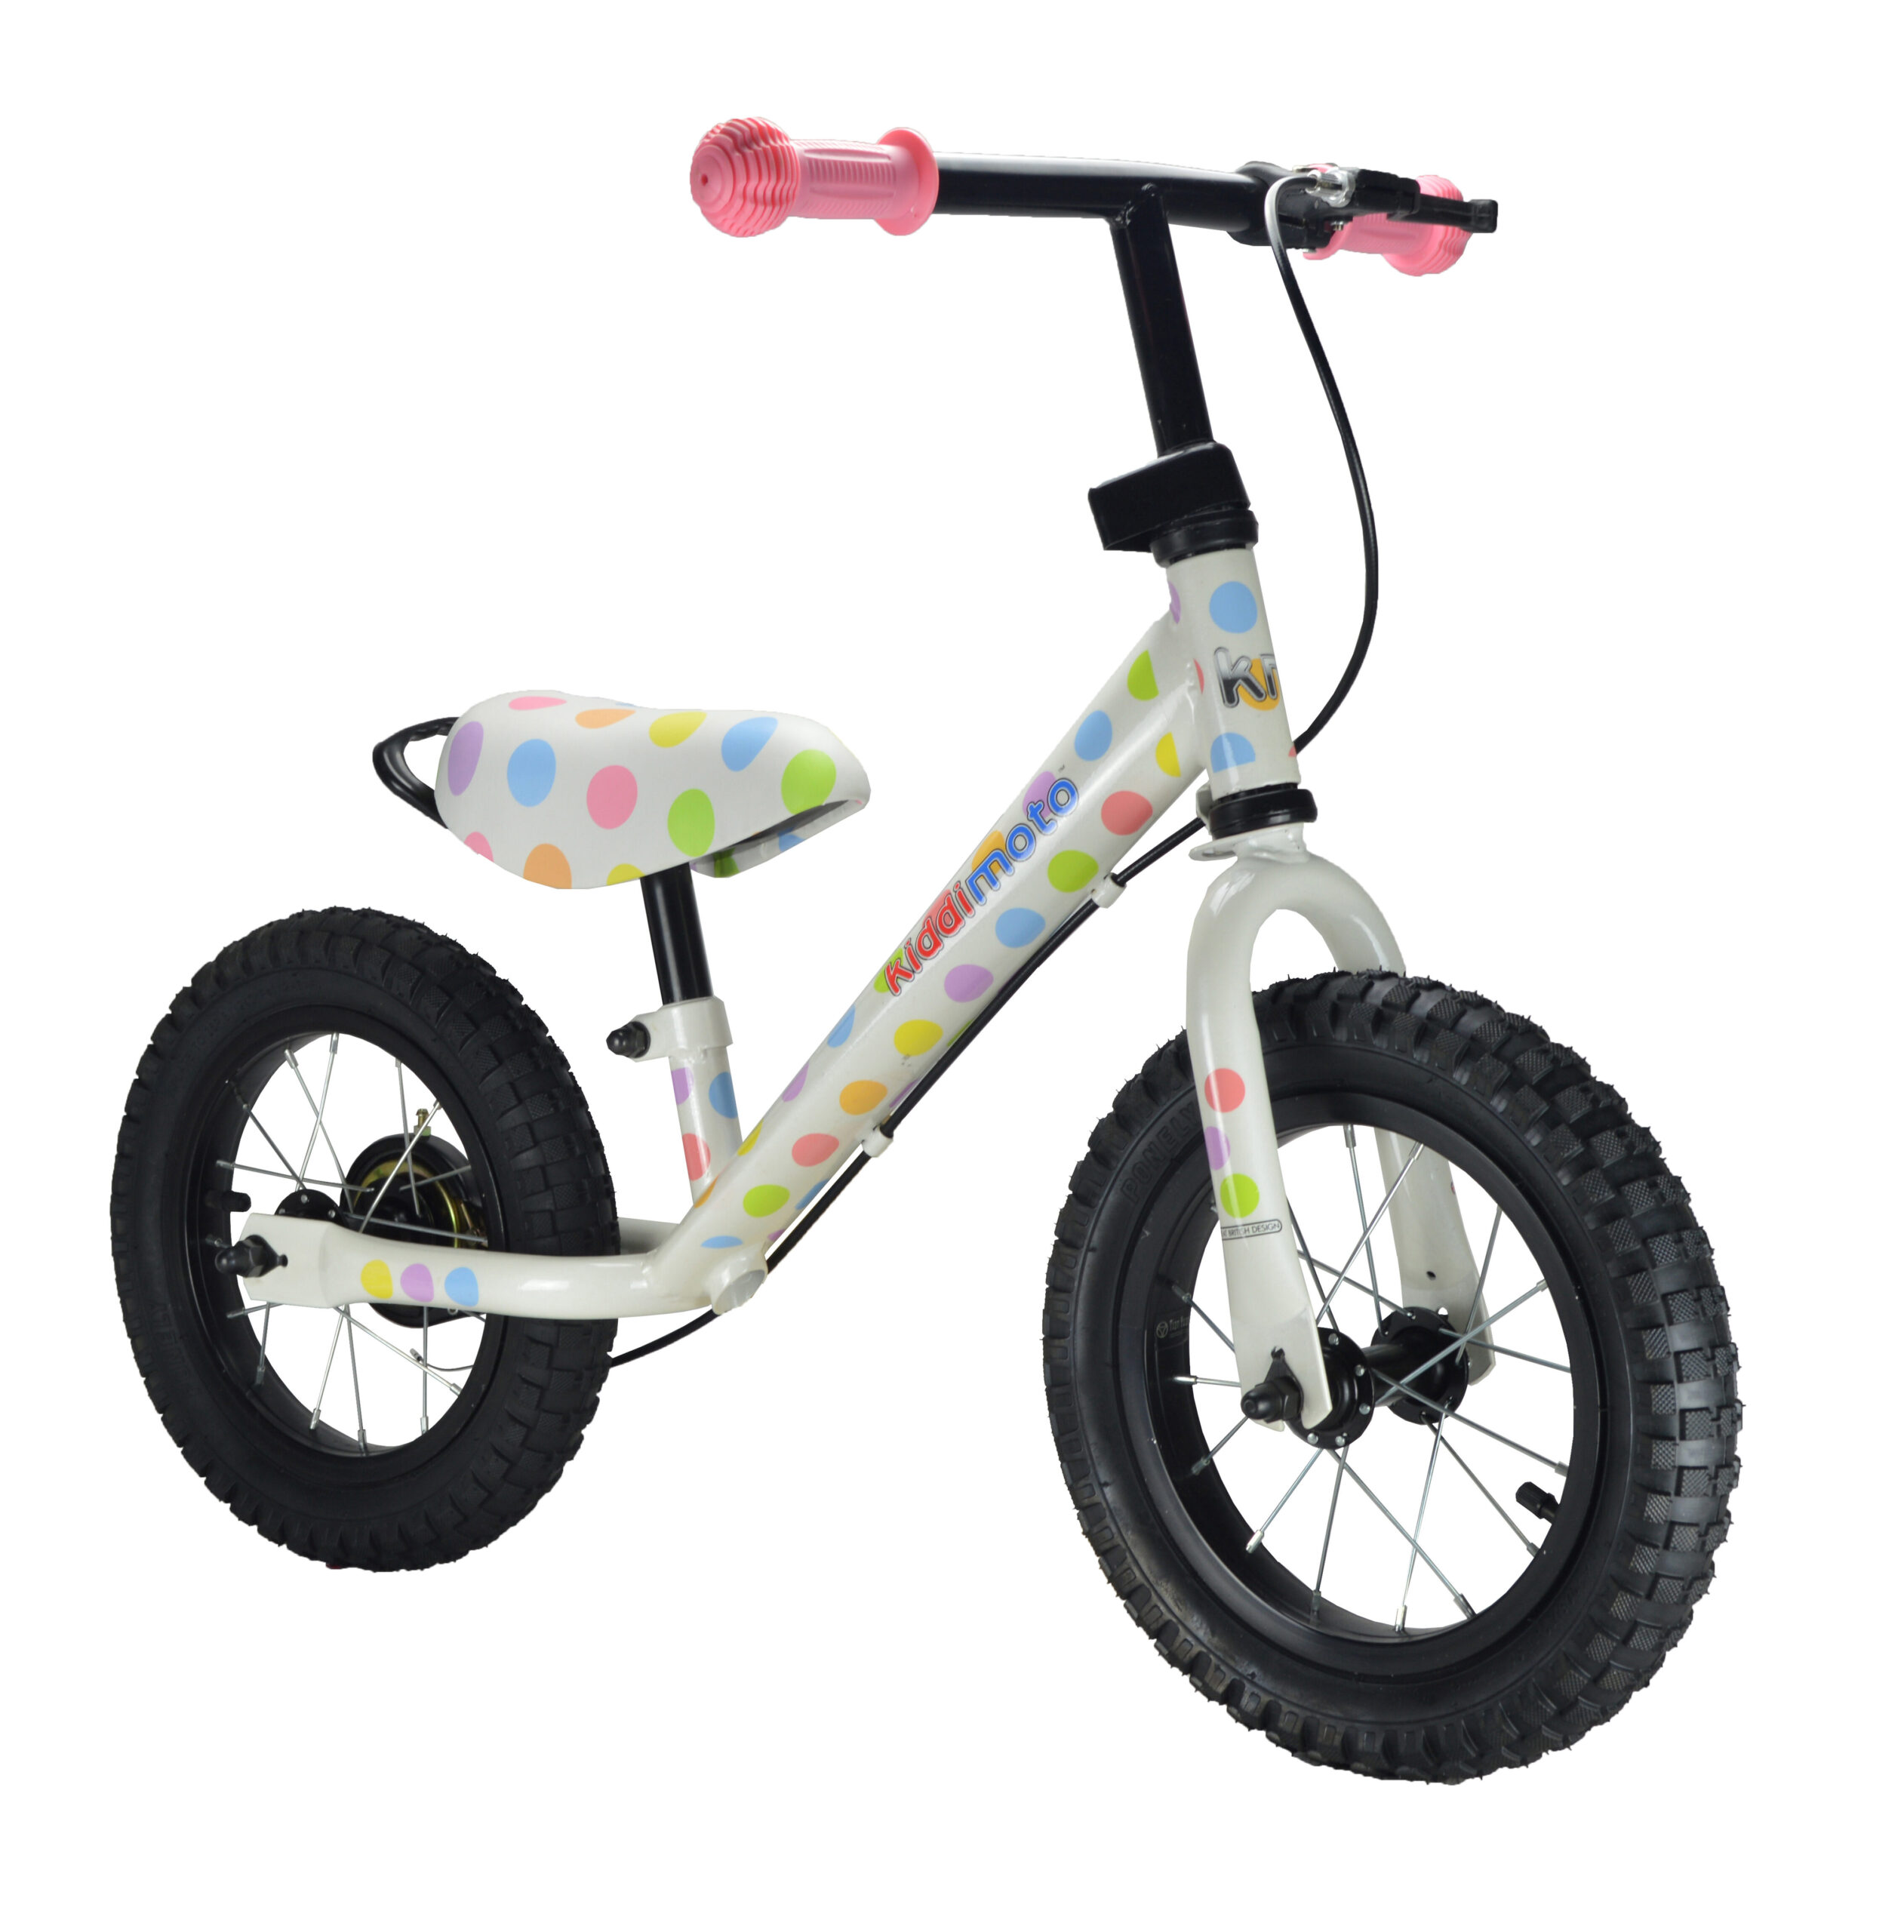 Balanscykel Kiddimoto Super Junior Max, Pastel